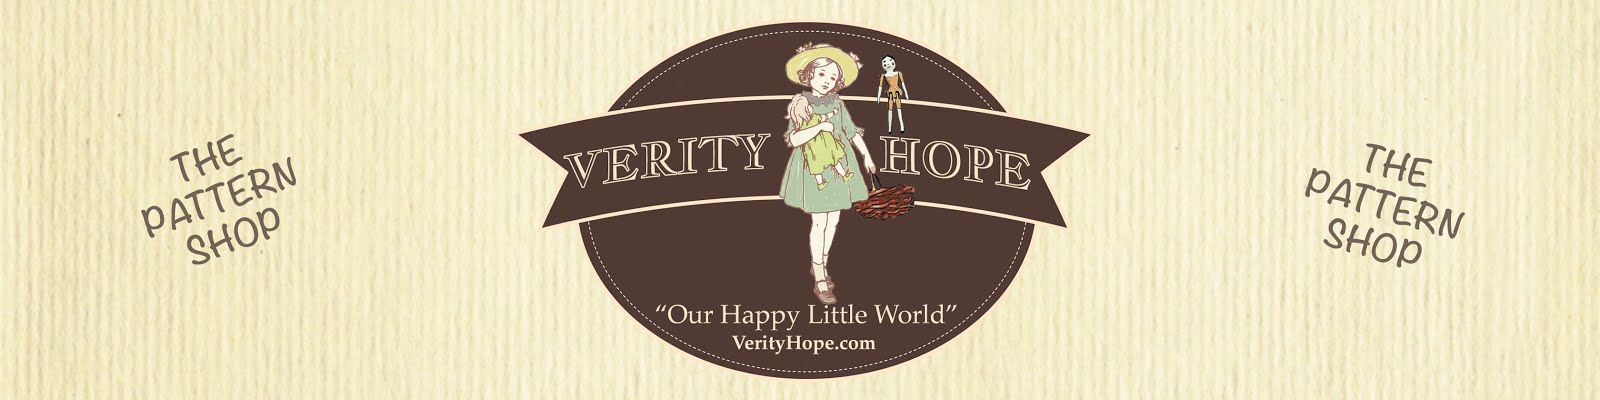 VERITY HOPE PATTERN SHOP